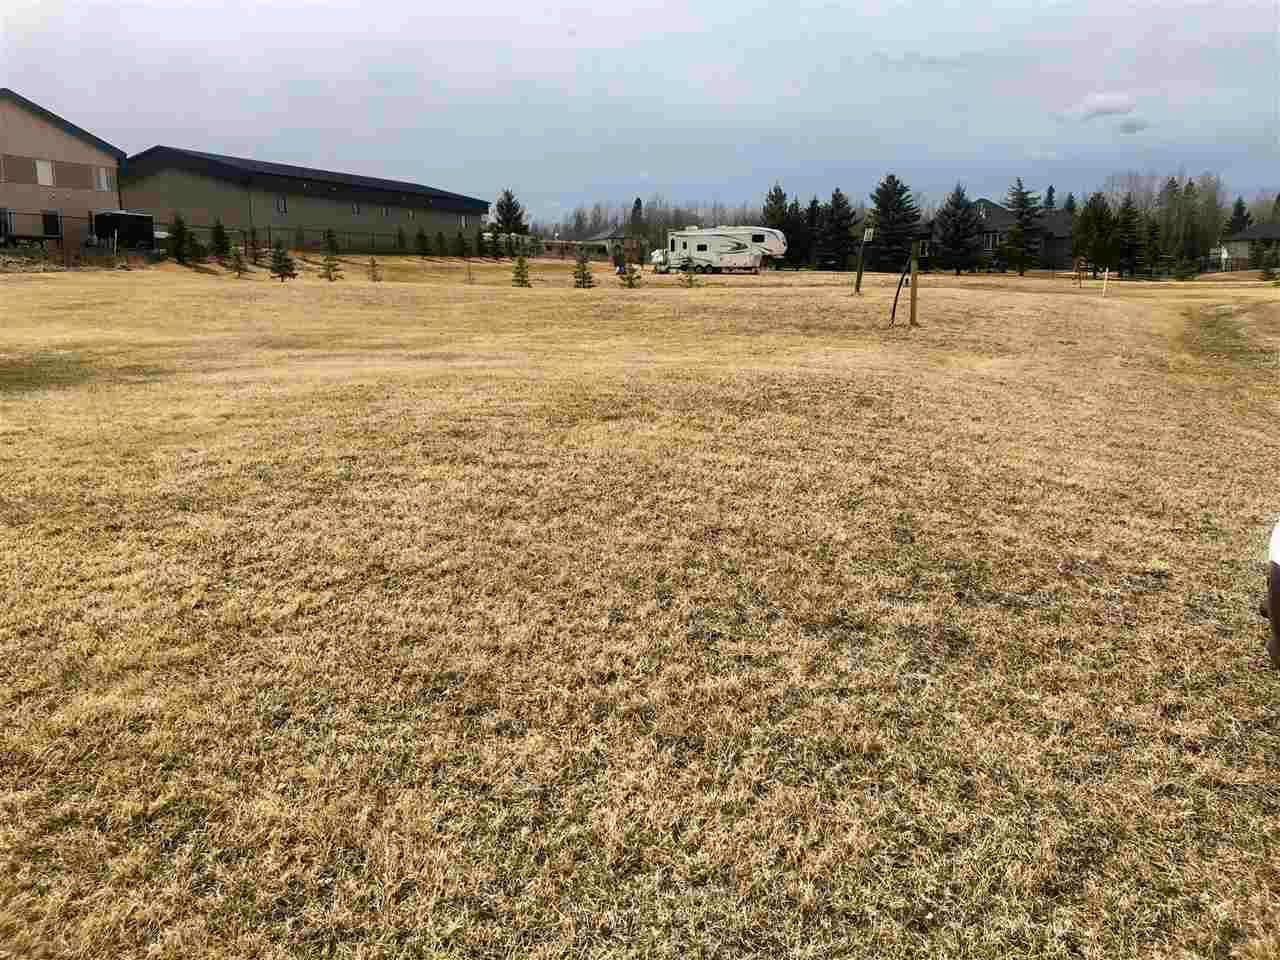 Main Photo: 30 Village Creek Estates: Rural Wetaskiwin County Rural Land/Vacant Lot for sale : MLS®# E4241750